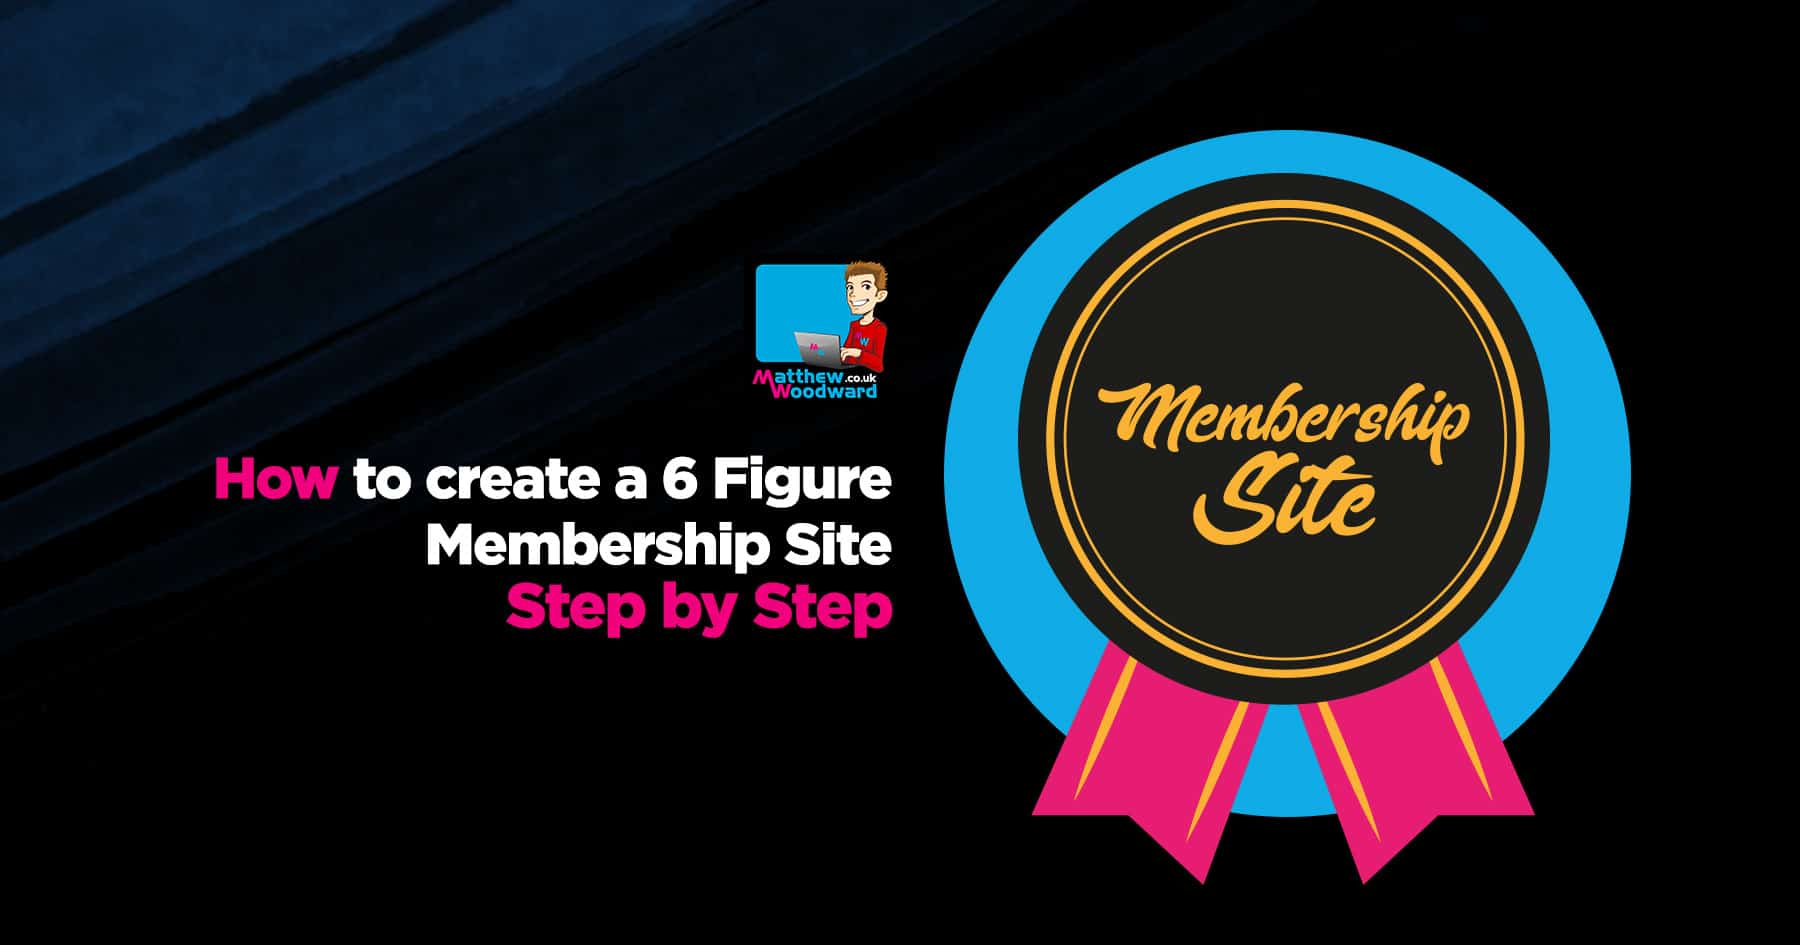 How To Create A 6 Figure Membership Site Step By Step